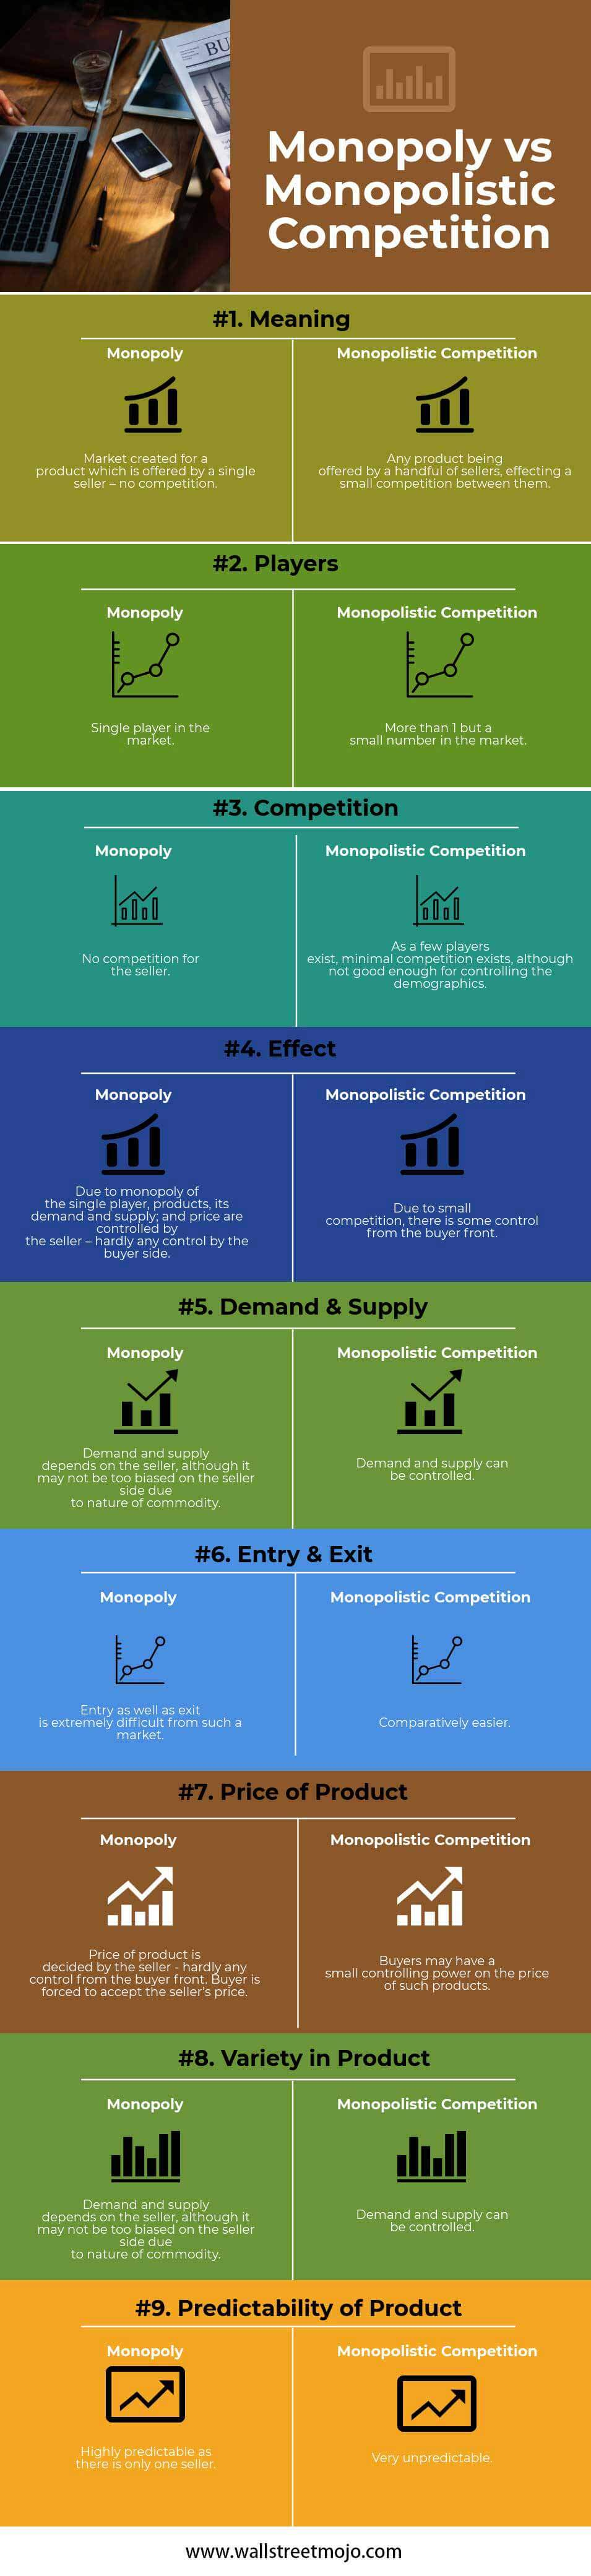 Monopoly Vs Monopolistic Competition Top 9 Differences Infographics